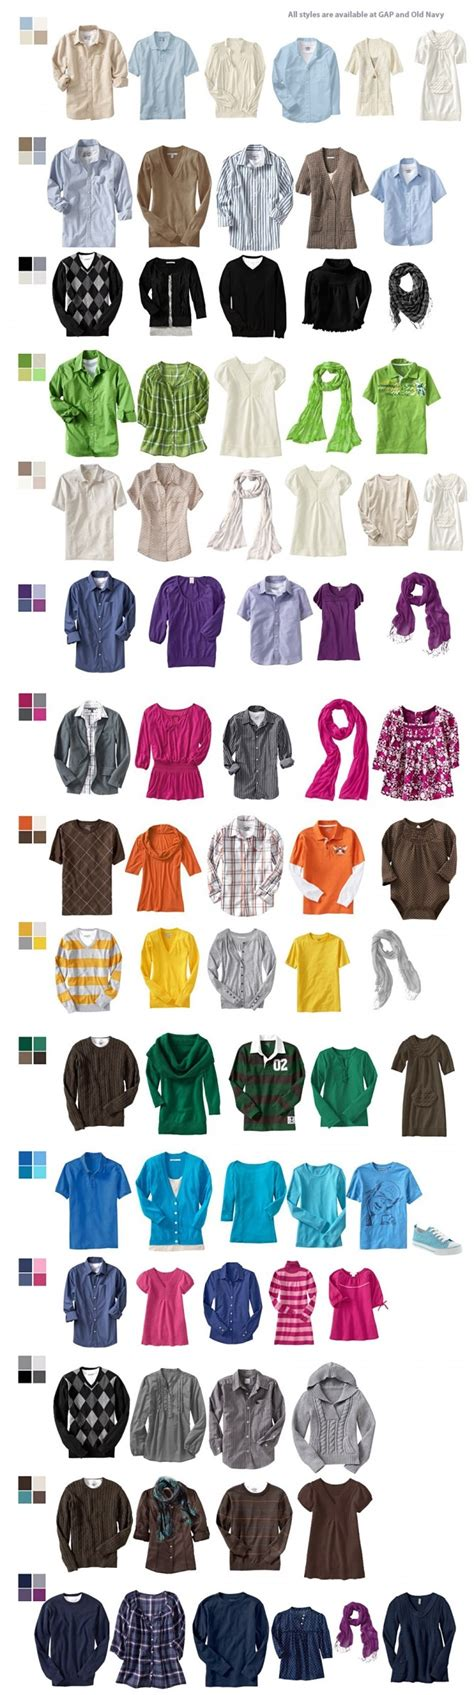 color schemes for family photos what to wear for family photos clothing ideas